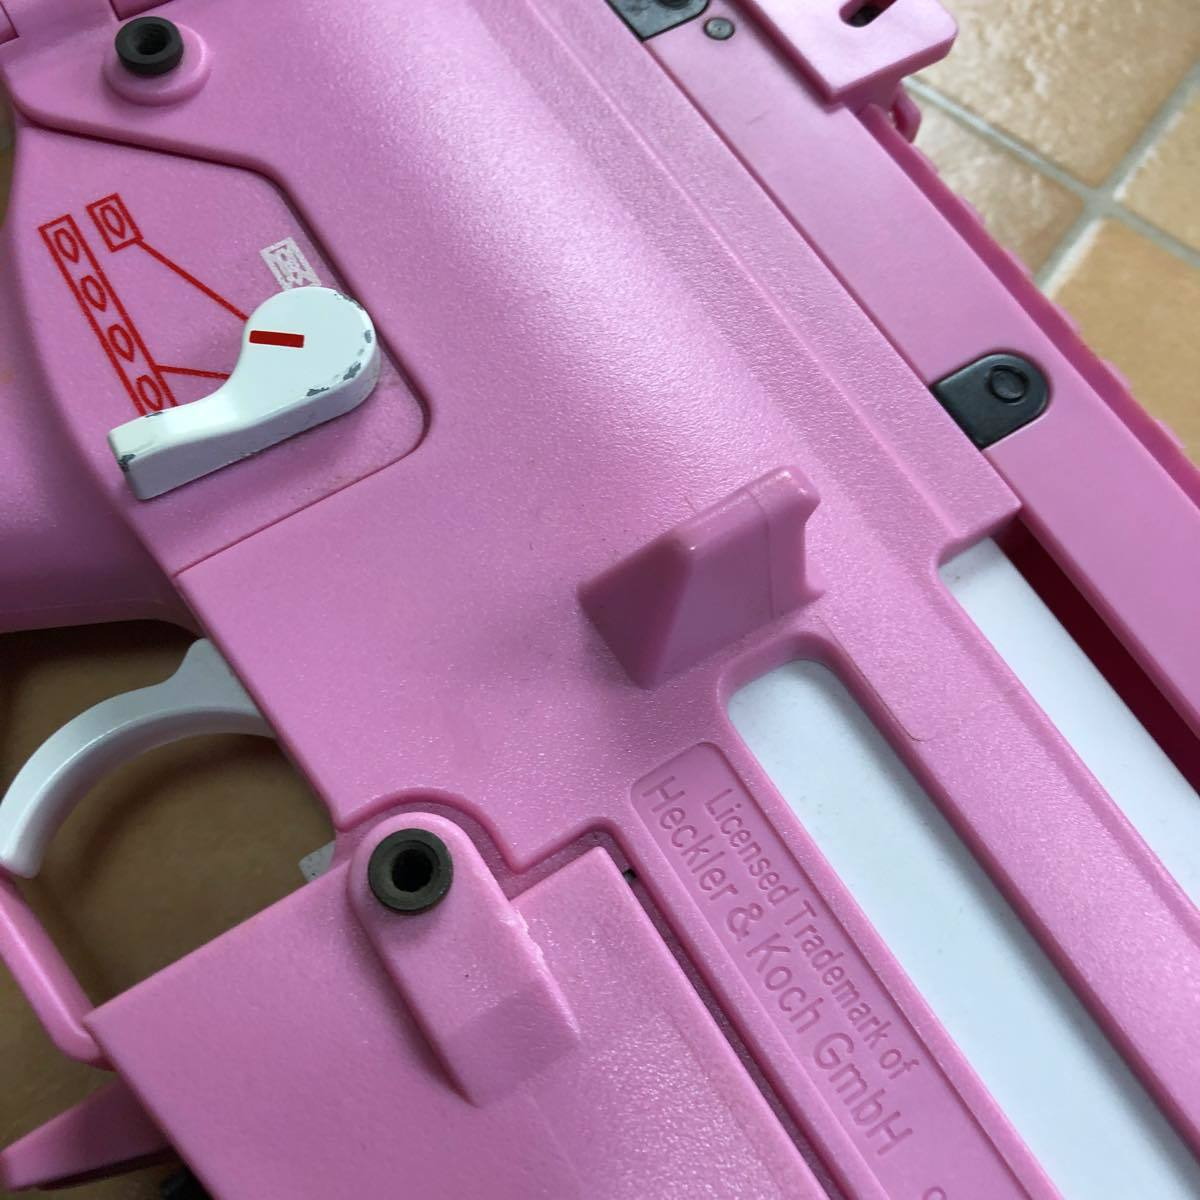 S&T G36C Competition 電動ガン Pink S&TAEG12PN  ピンク #906_画像8